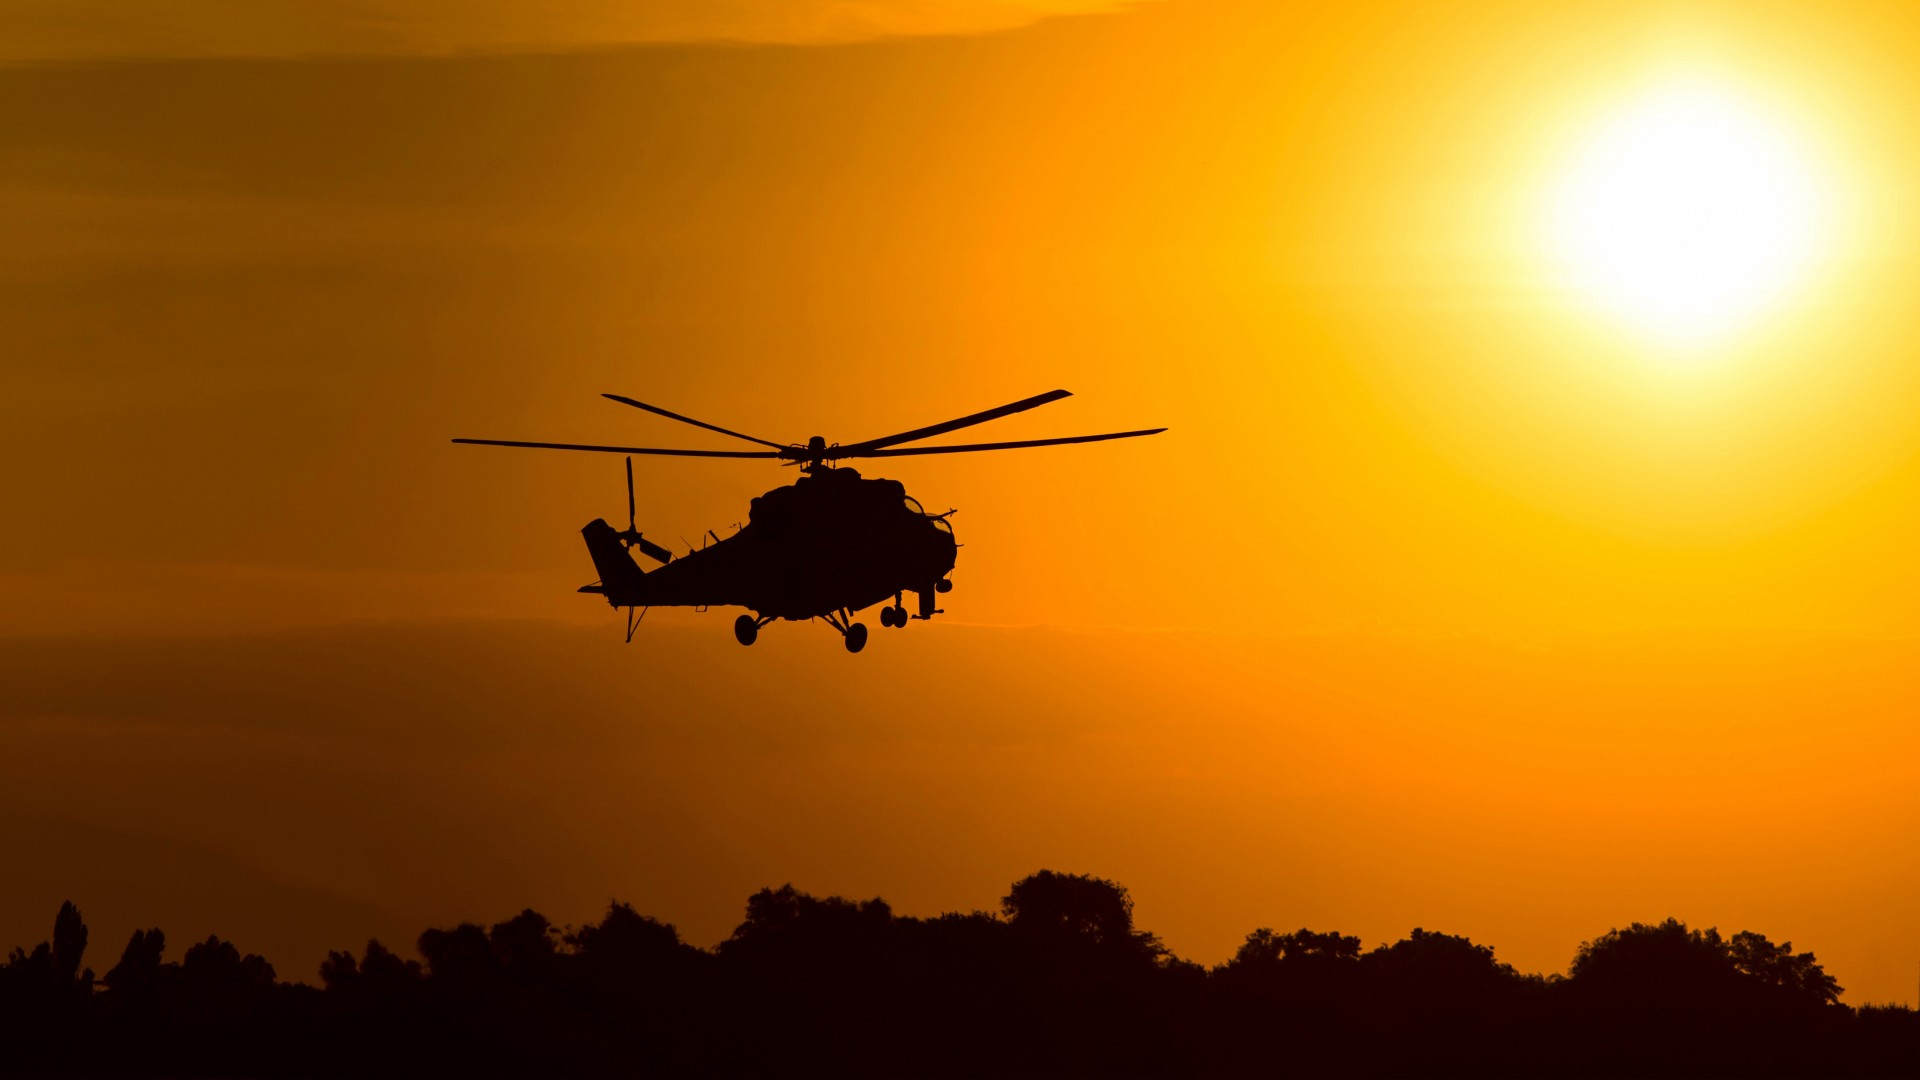 Iphone X Dynamic Wallpaper Download Mil Mi 2 Attack Helicopter Silhouette 4k Wallpapers Hd